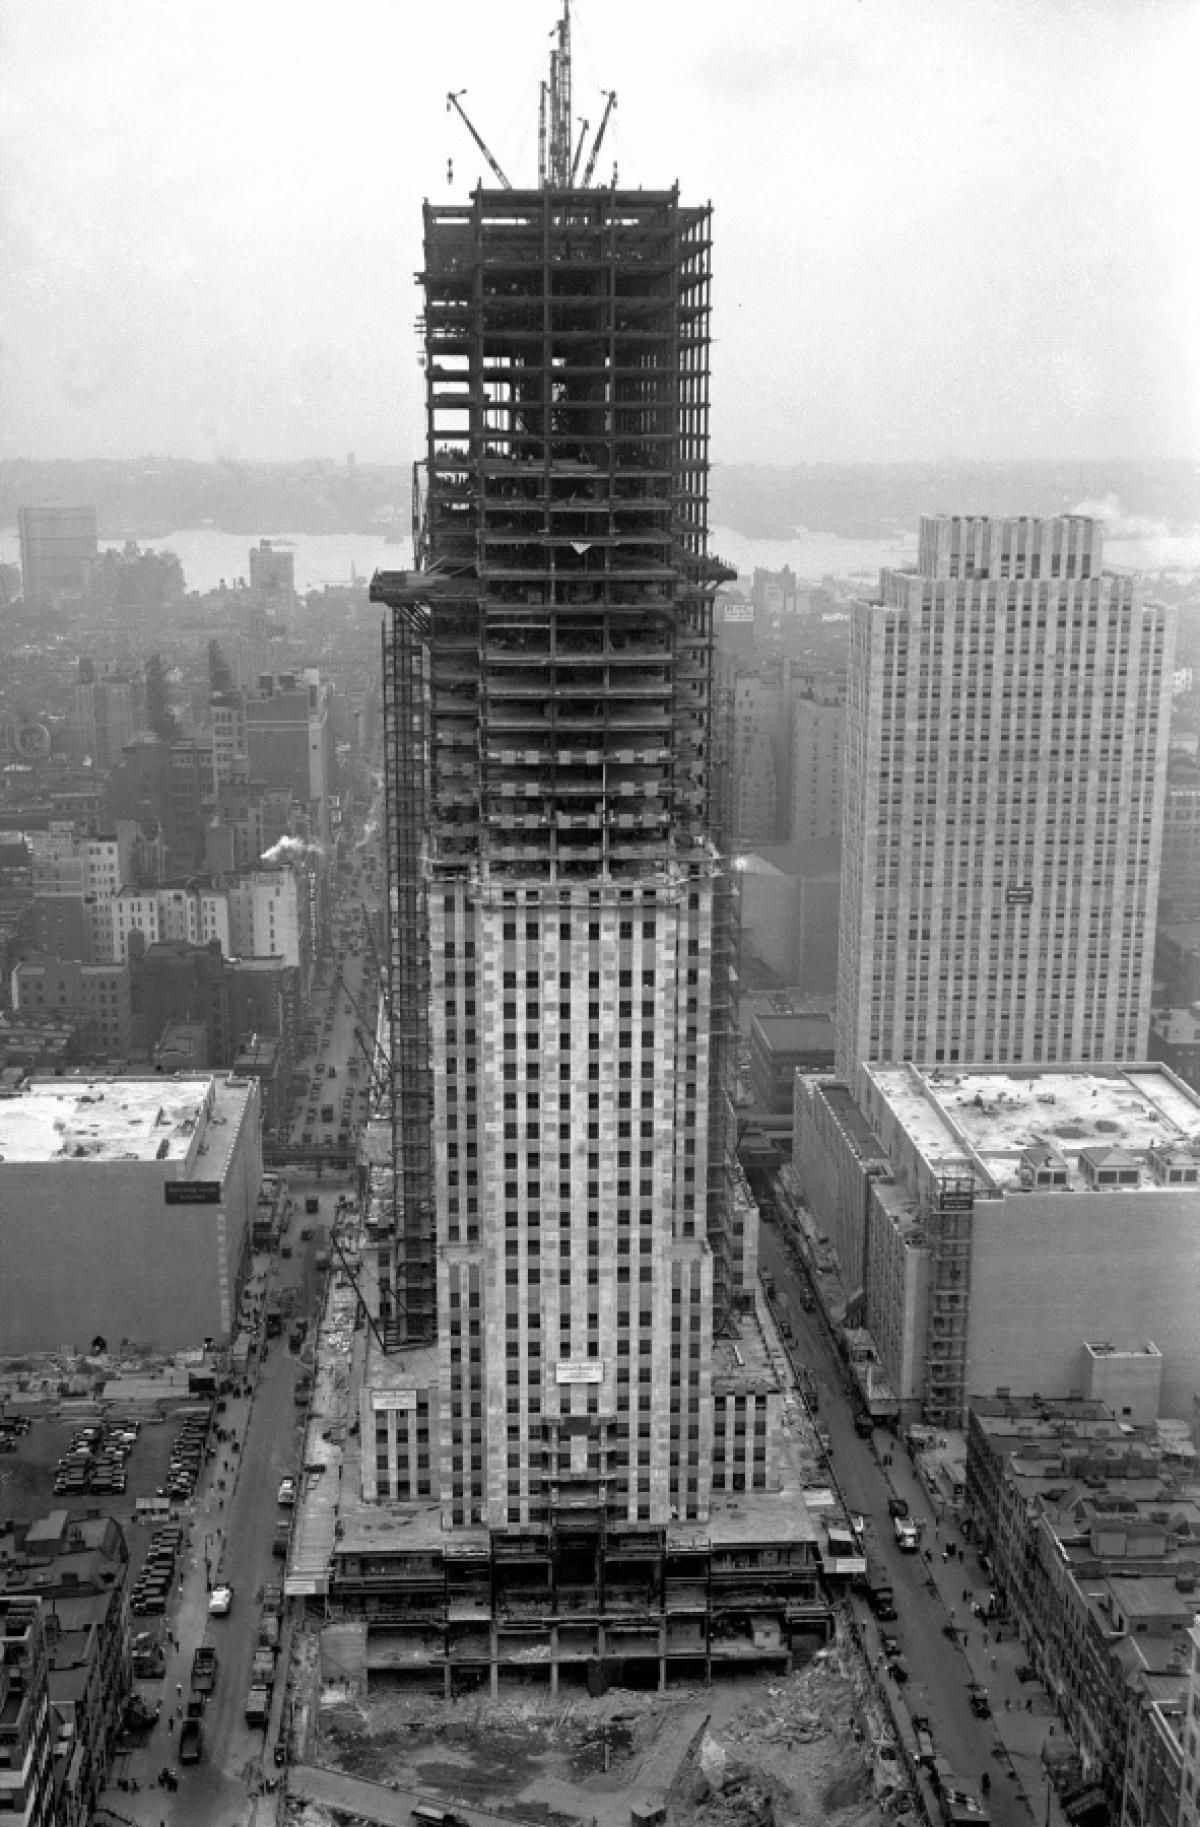 The Rockefeller Center is pictured under construction in 1932. The New York City icon was completed in 1939.